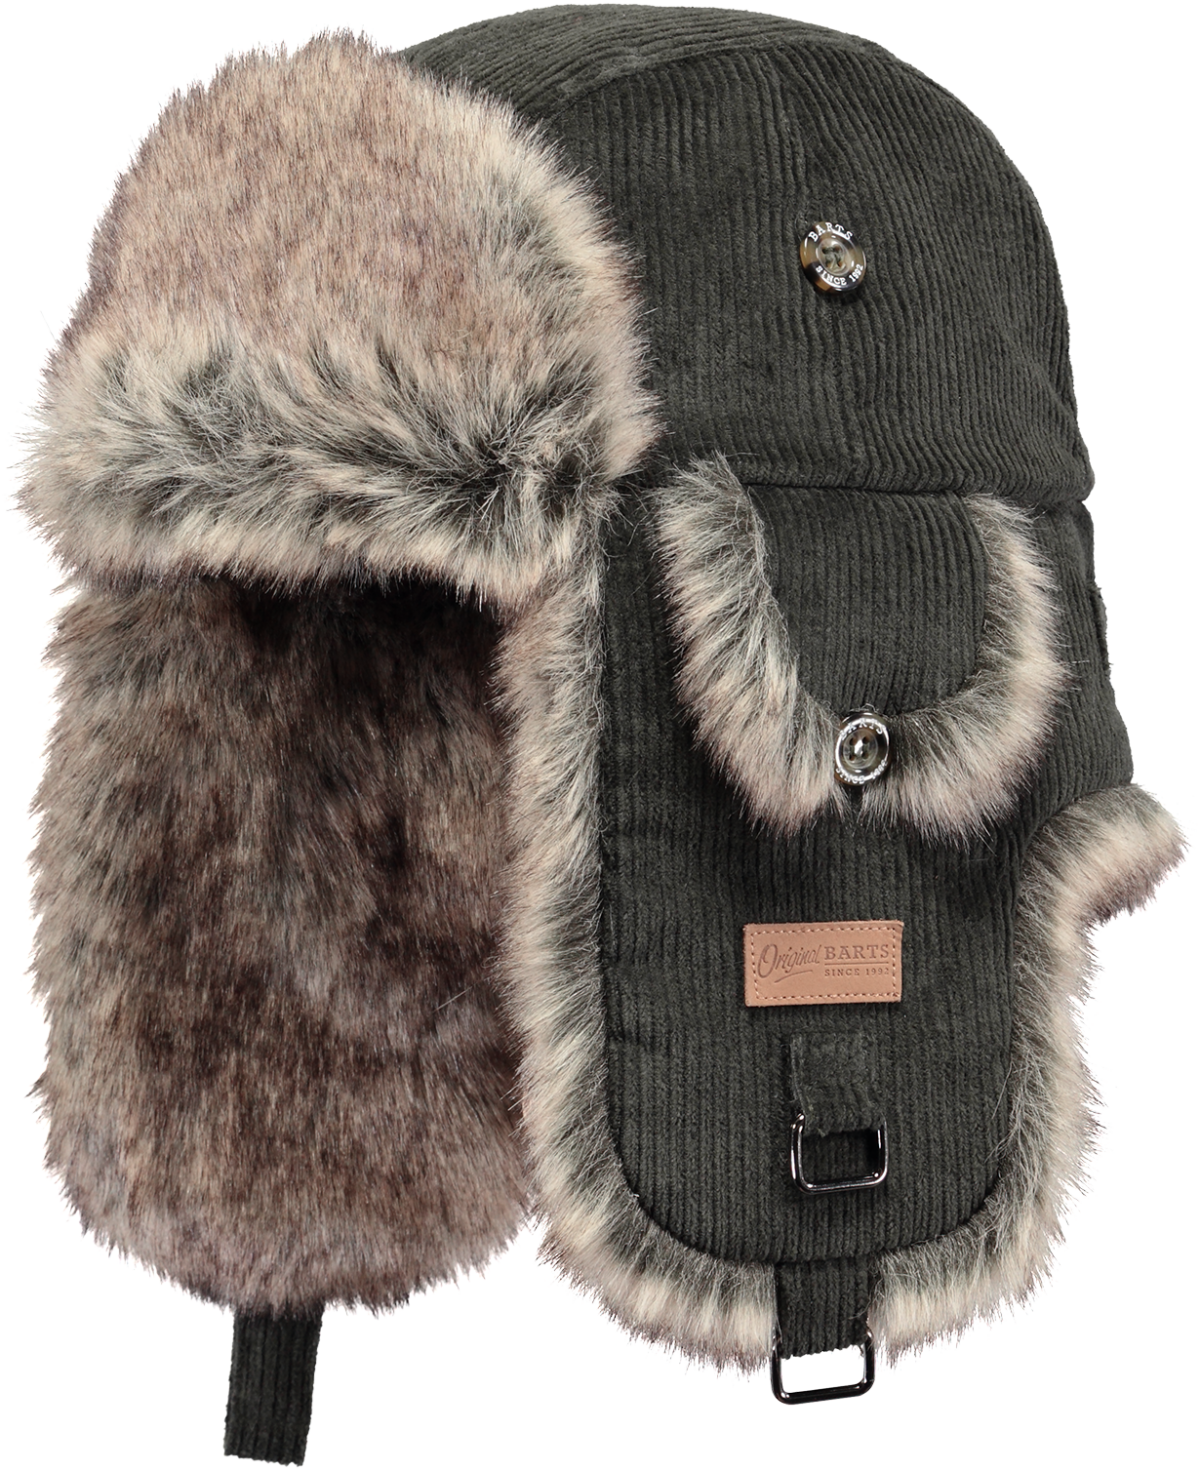 clip freeuse stock Collection of free hat. Ushanka transparent winter